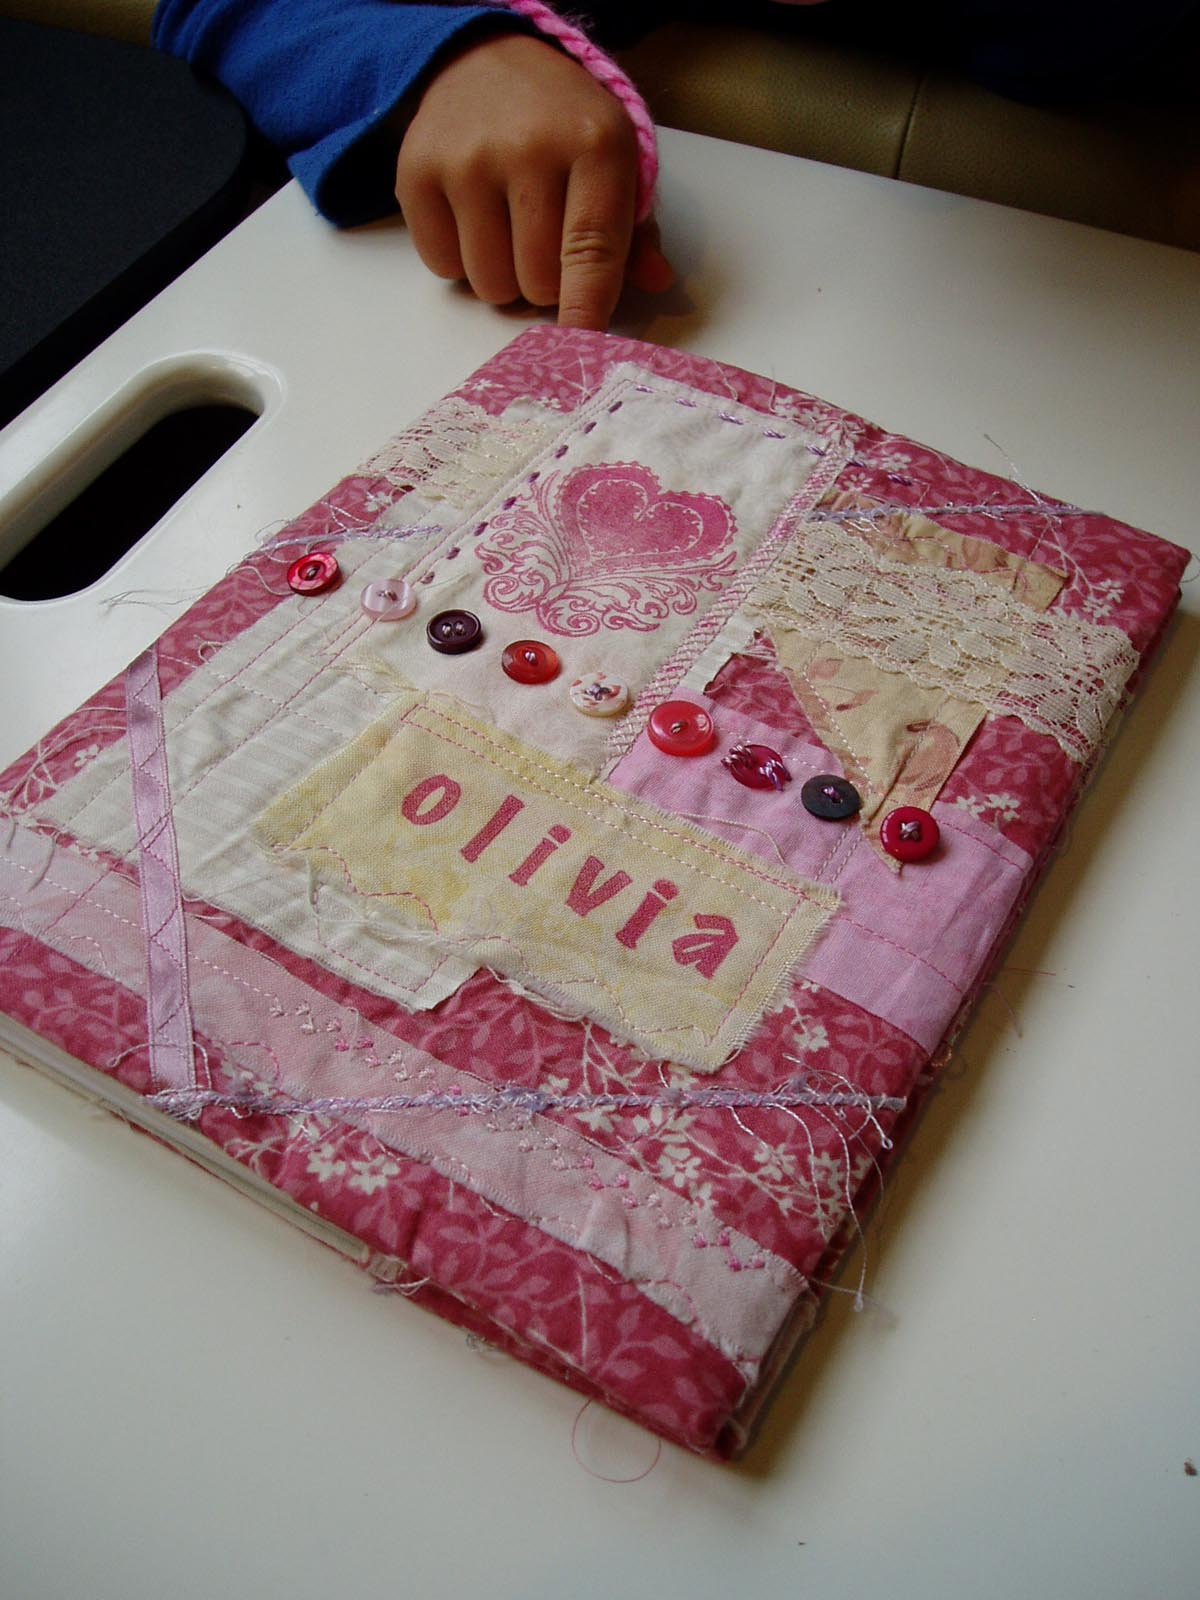 Sew Fabric Book Cover Tutorial : Charlotte scott textile artist fabric book cover tutorial